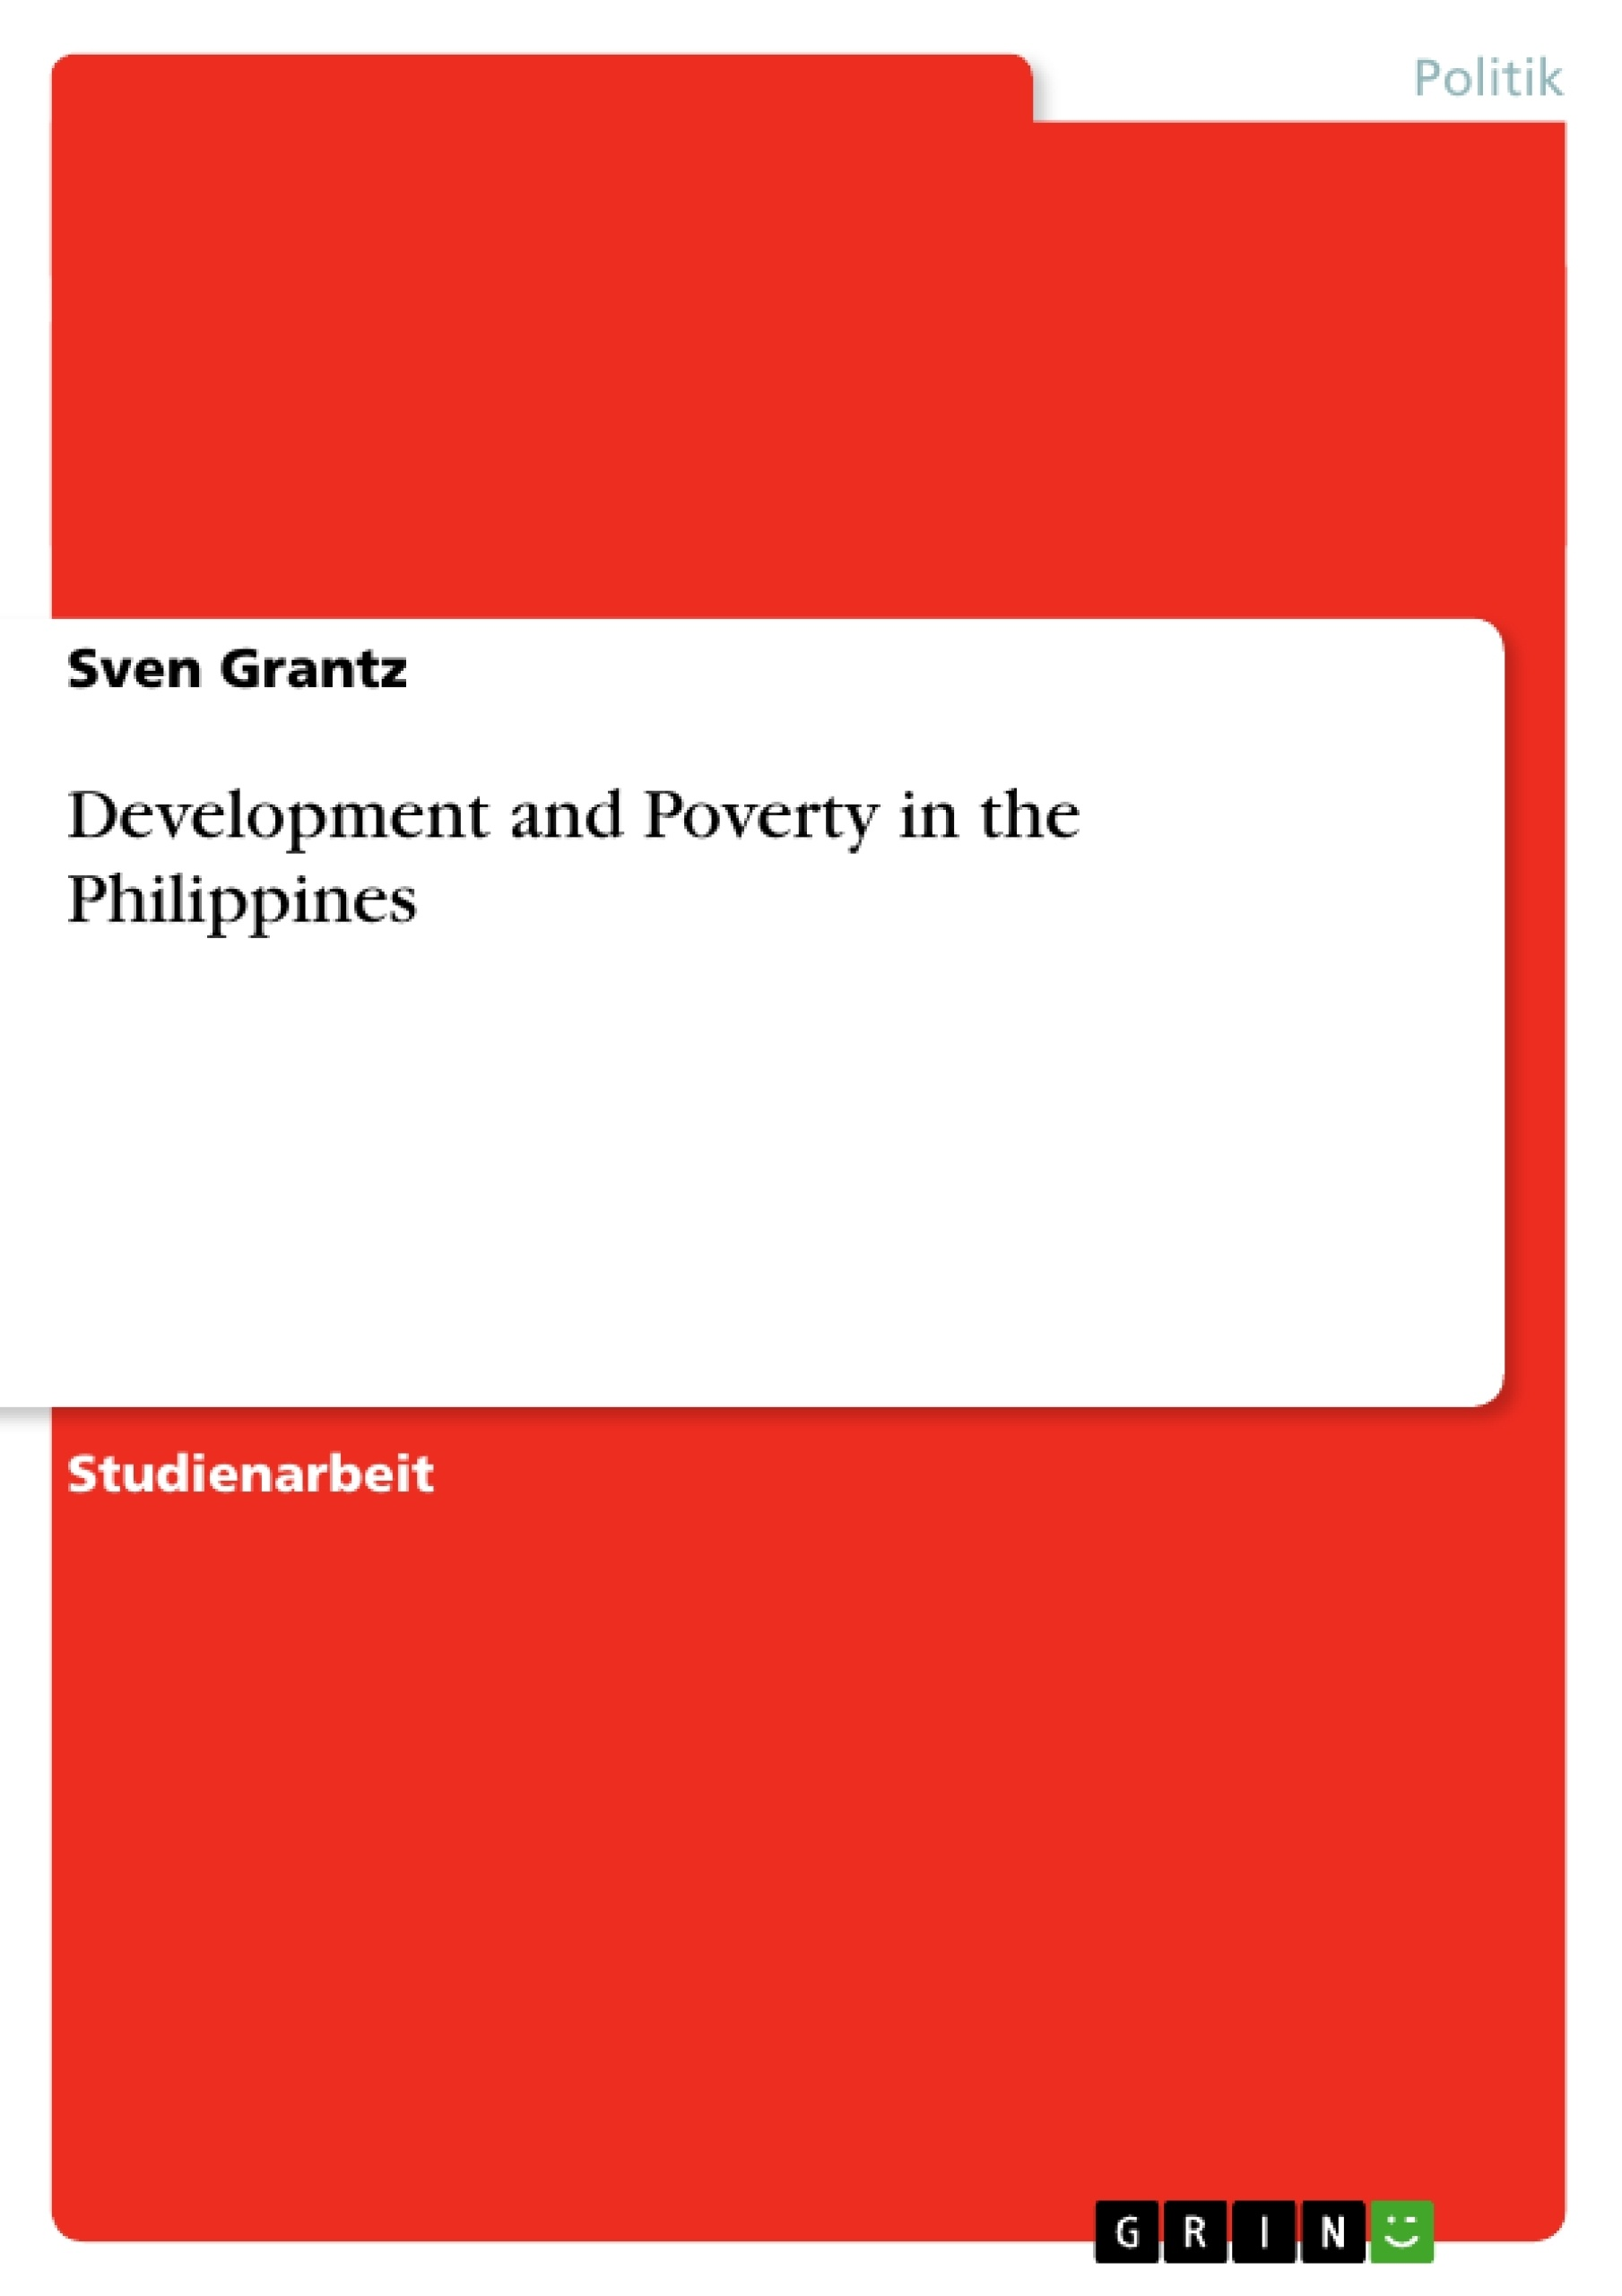 Titel: Development and Poverty in the Philippines